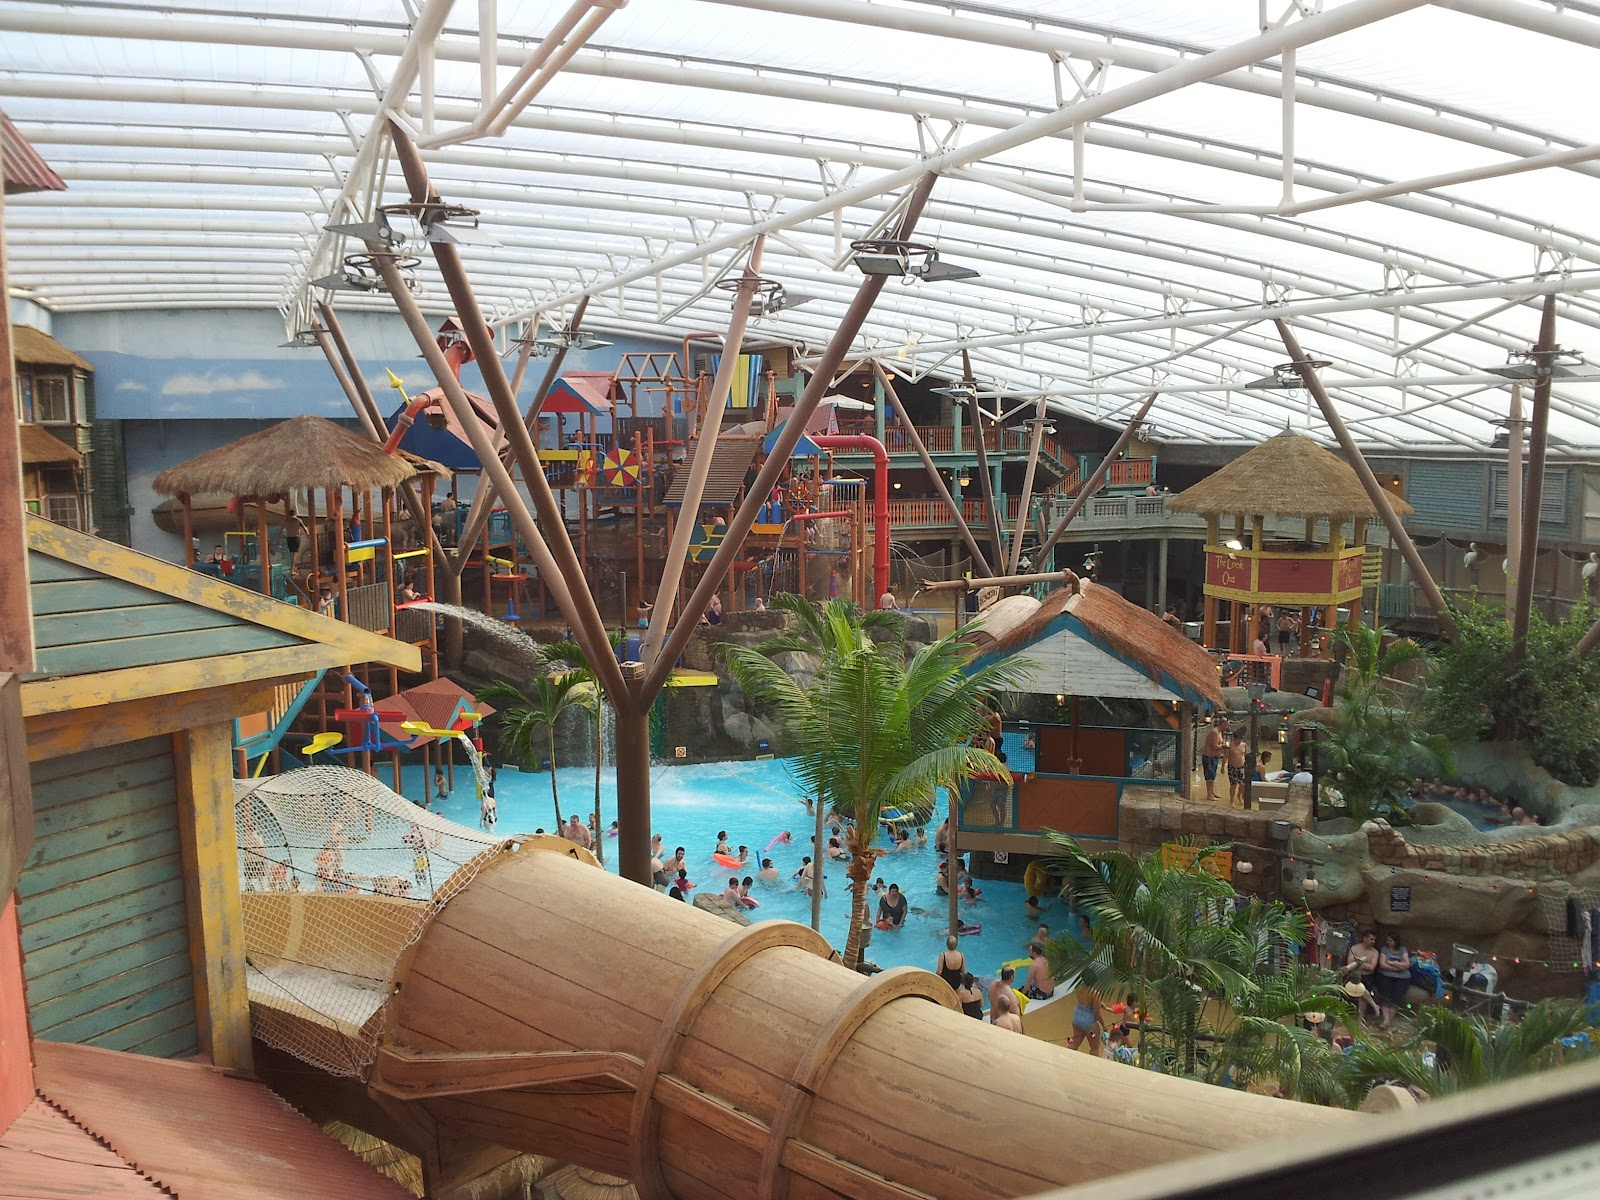 Result 35 Off Our Next Stay At Alton Towers Hotel Kip Hakes